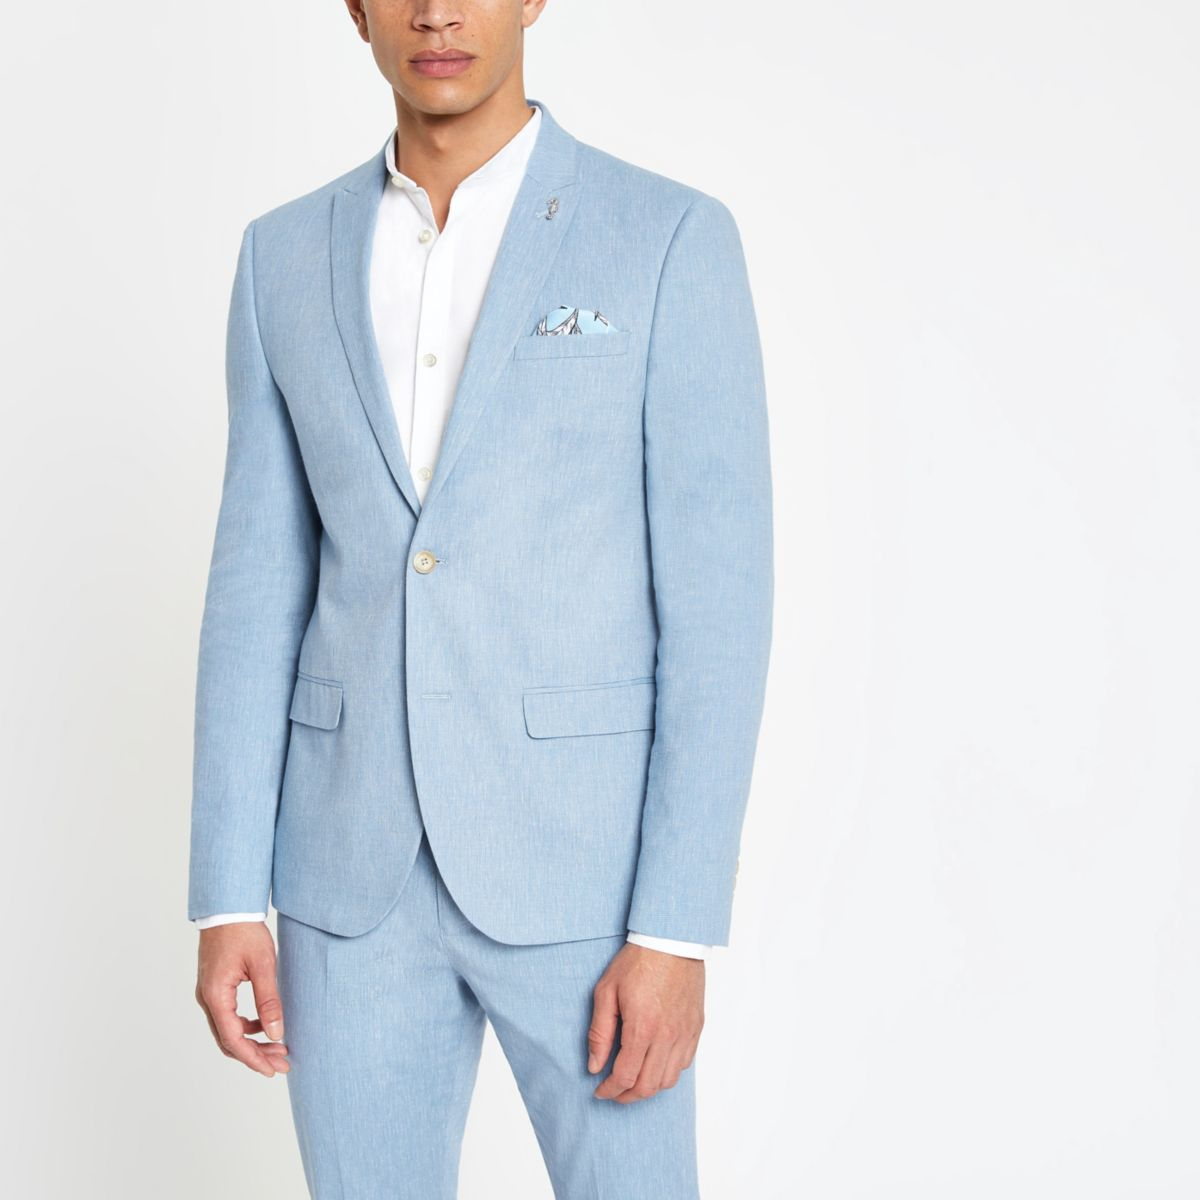 Mens Suits | Suits For Men | 3 Piece Suits | River Island